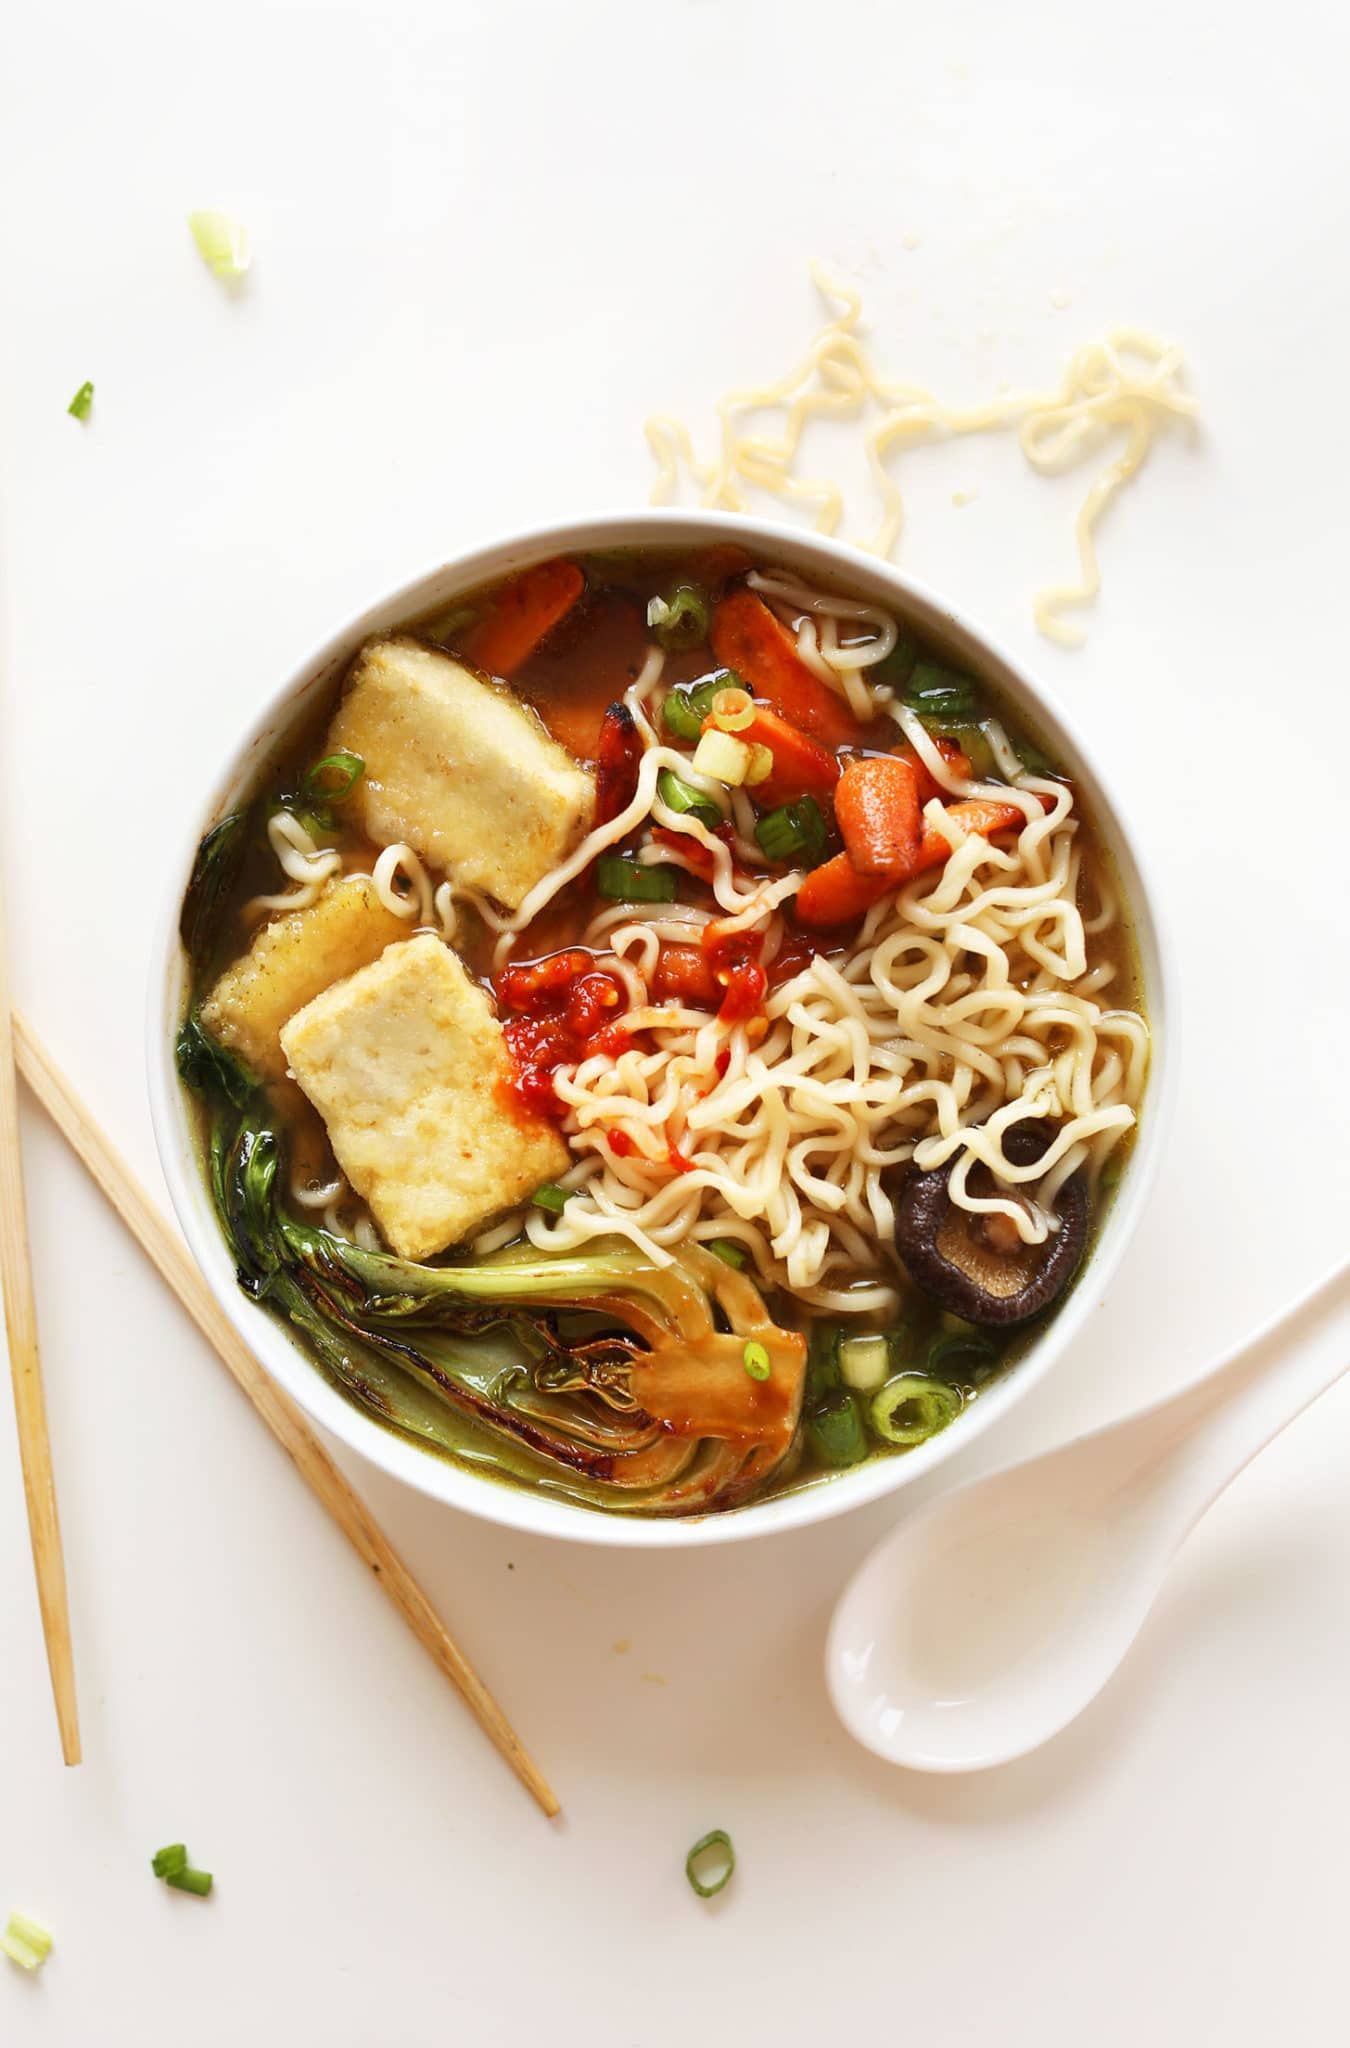 A bowl vegan ramen with tofu, bok choy, and green onions on top on a white background.